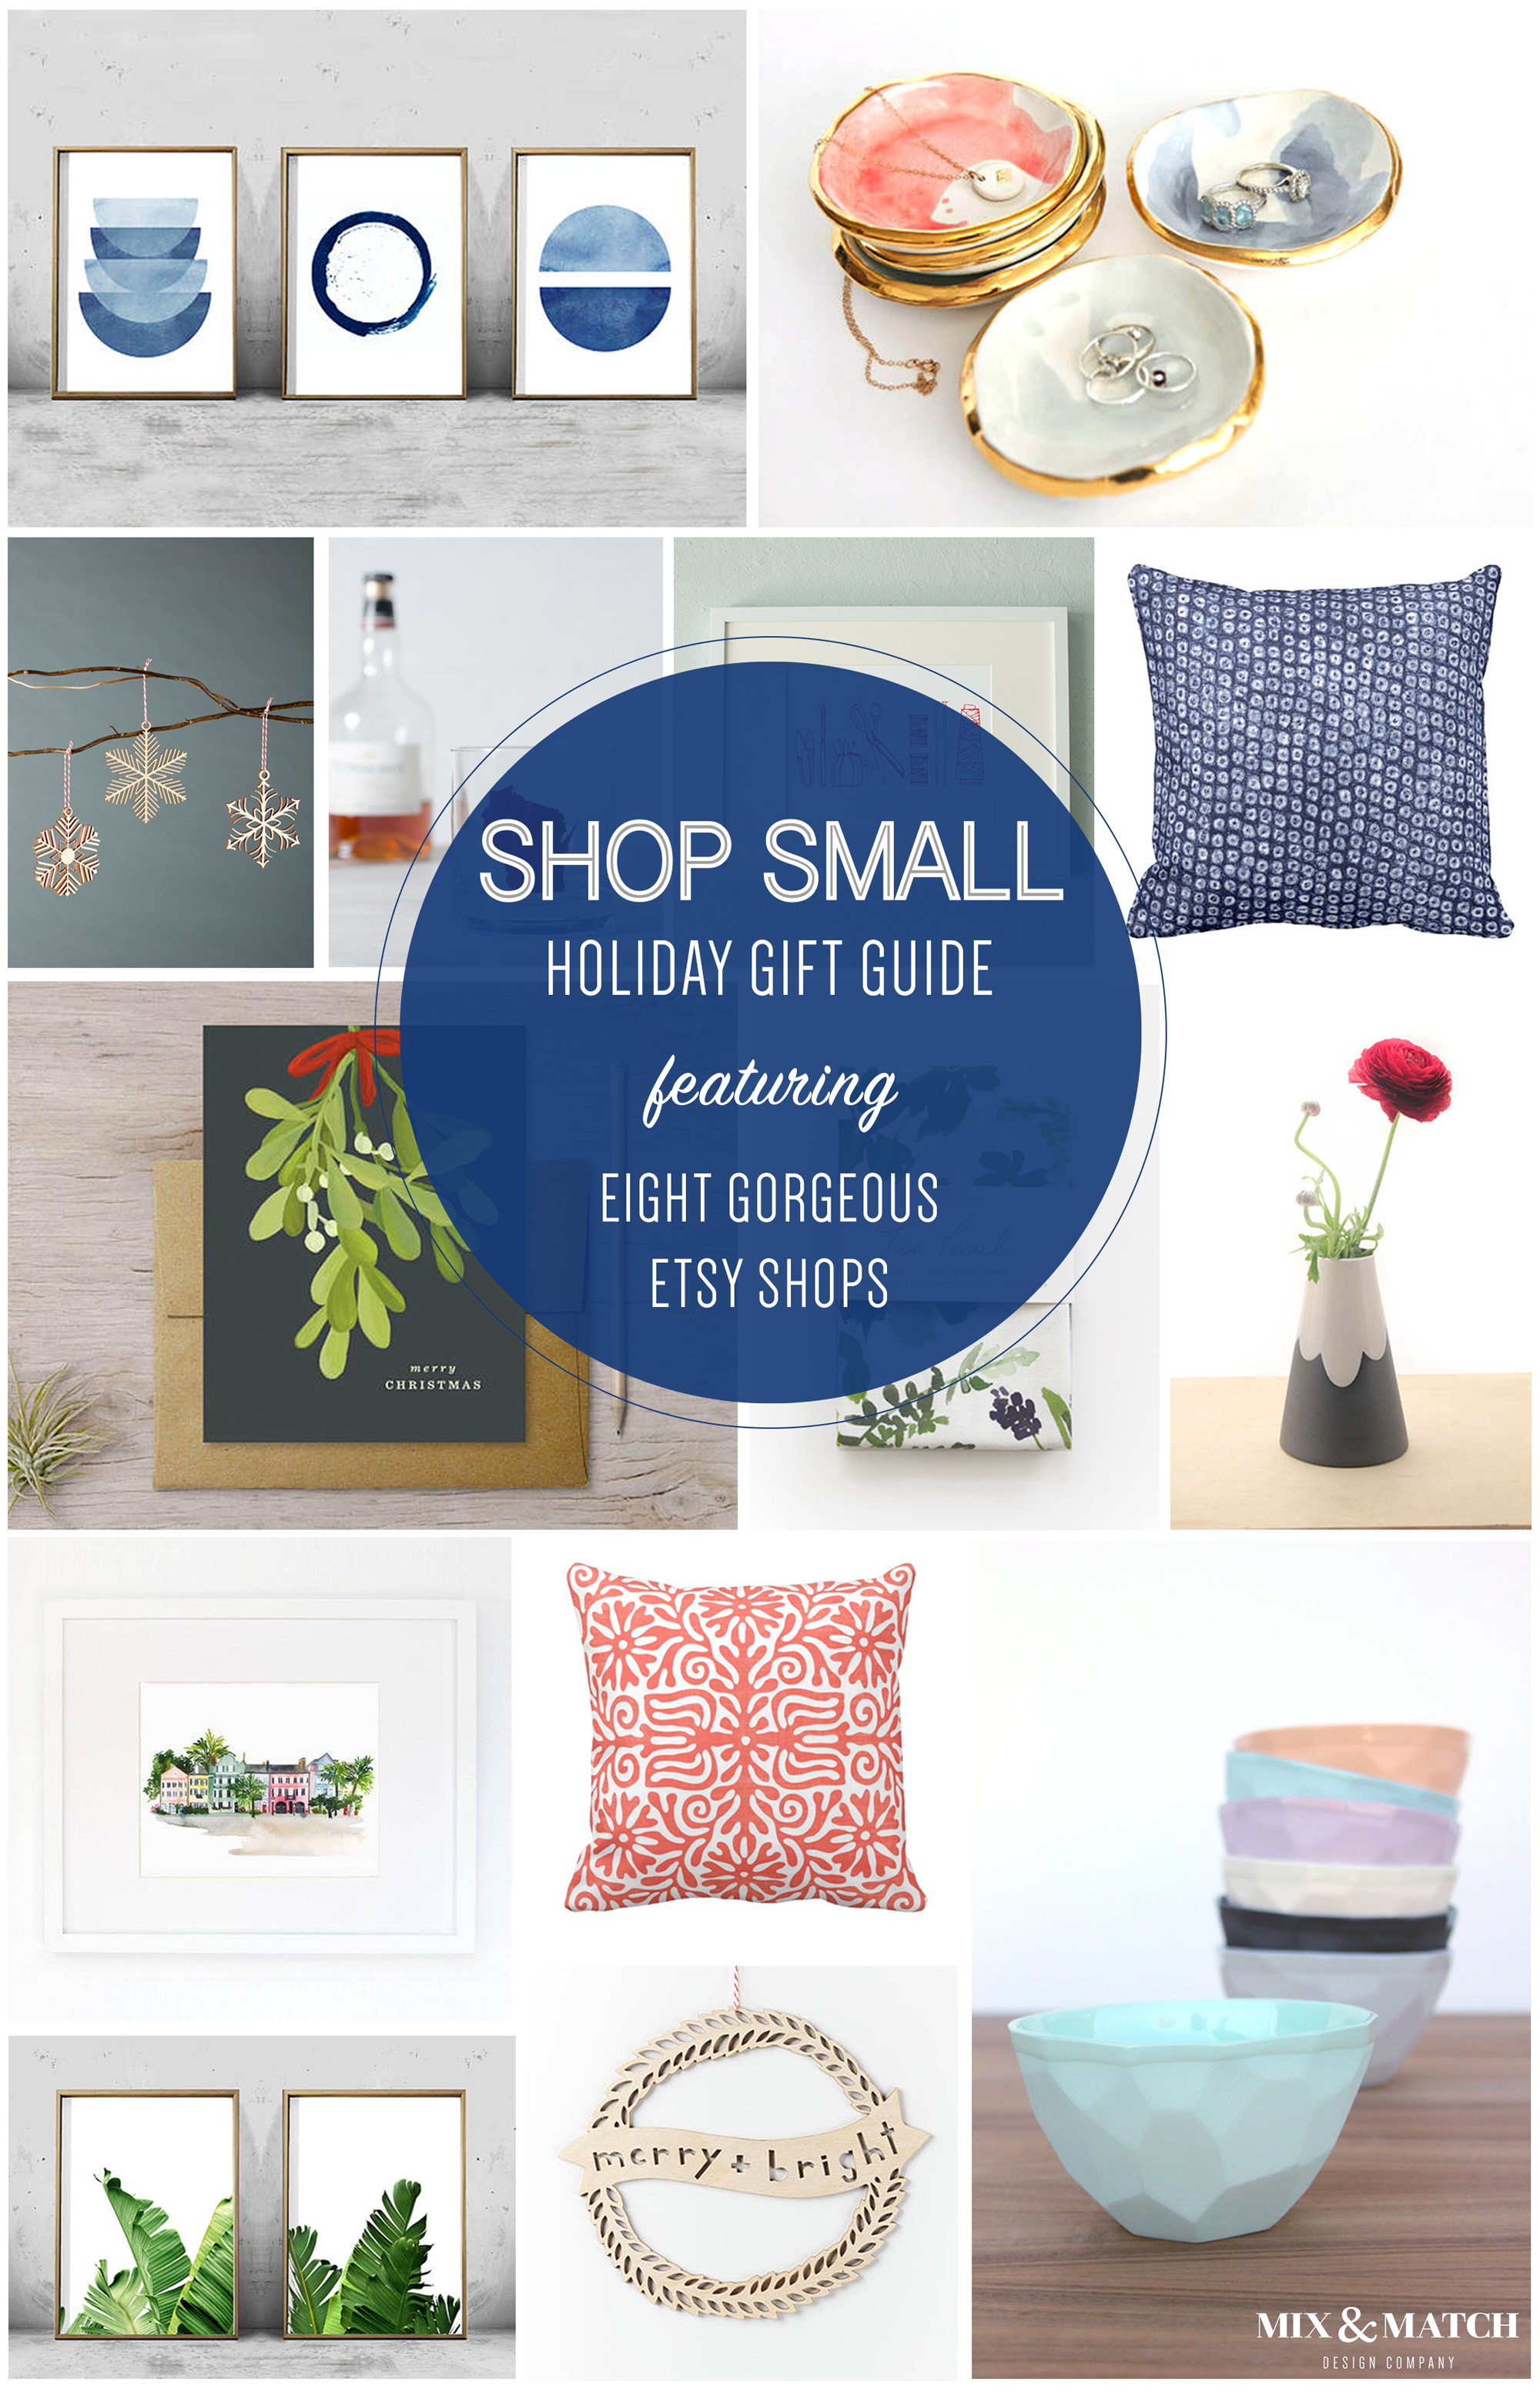 Shop Small this holiday season! Etsy is a great way to support small businesses, and this gift guide is a great place to start. Find art prints, ornaments, modern ceramics, pillows, and more. // Mix & Match Design Company Gift Guides